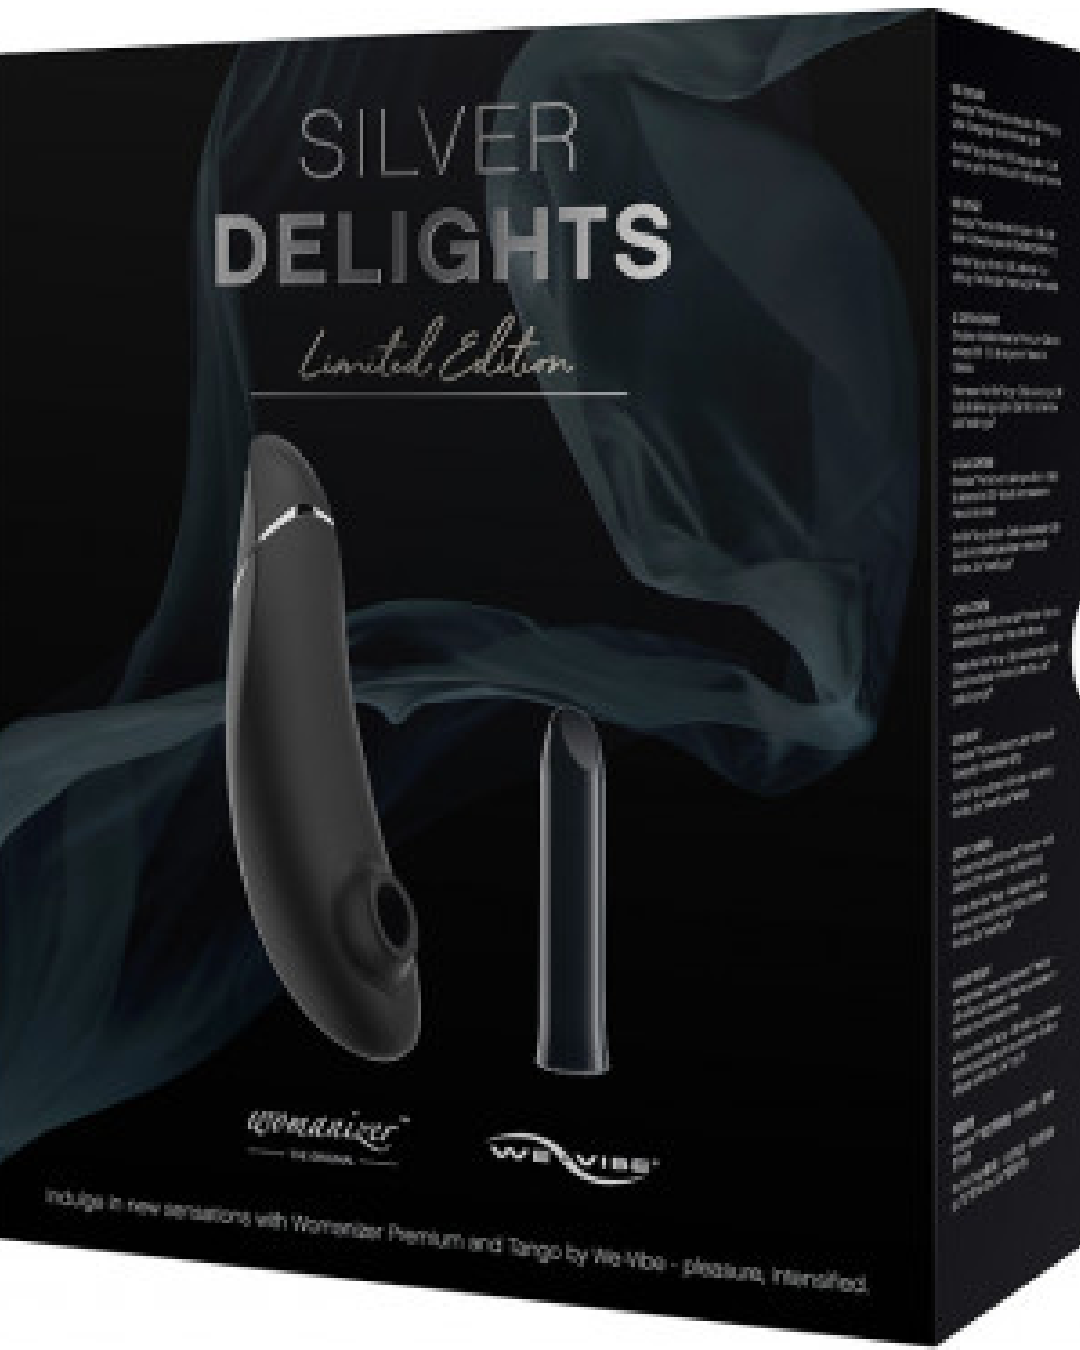 Womanizer Premium and We-Vibe Tango Silver Delights Vibrator Set product box